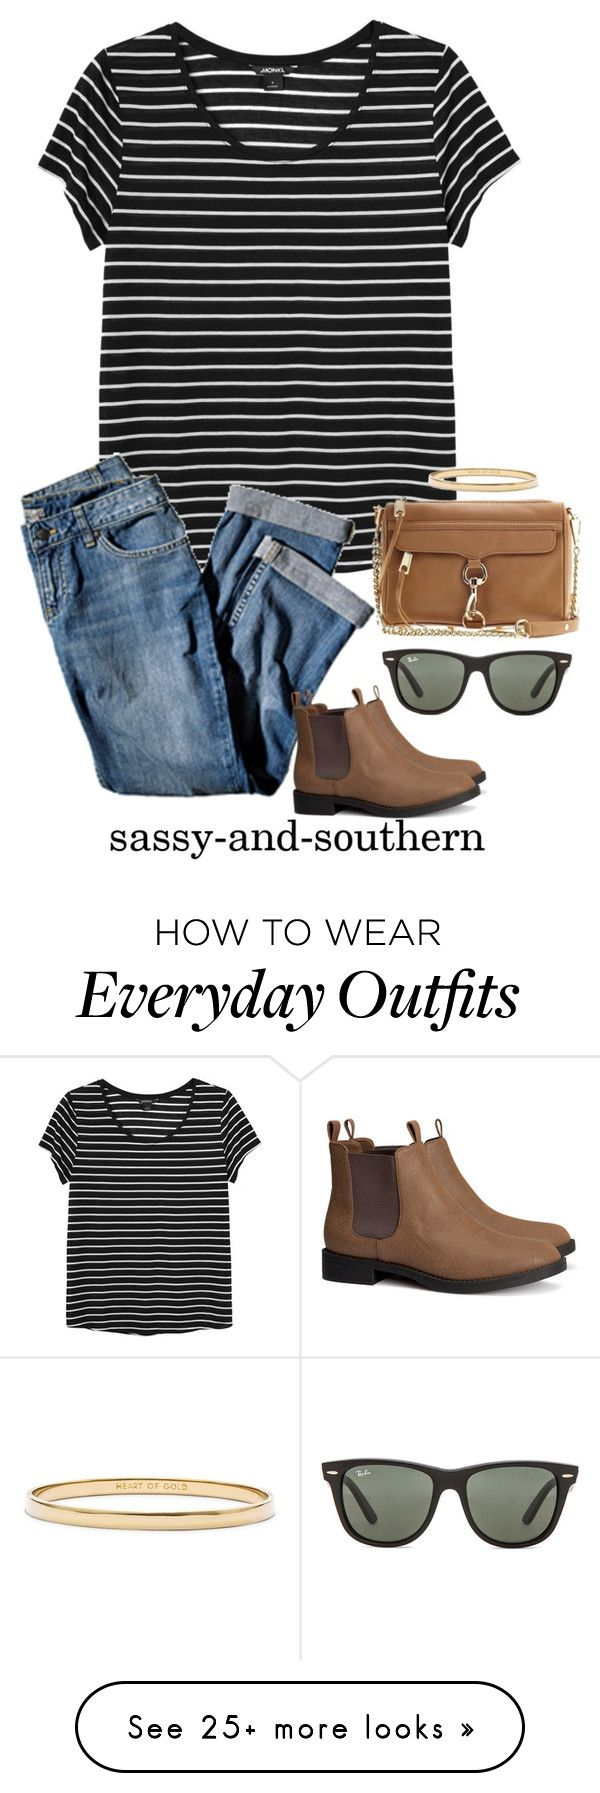 """fall outfit"" by sassy-and-southern on Polyvore featuring Monki, Rebecca Minkoff, J.Jill, Ray-Ban, H&M, Kate Spade and sassysouthernfall"